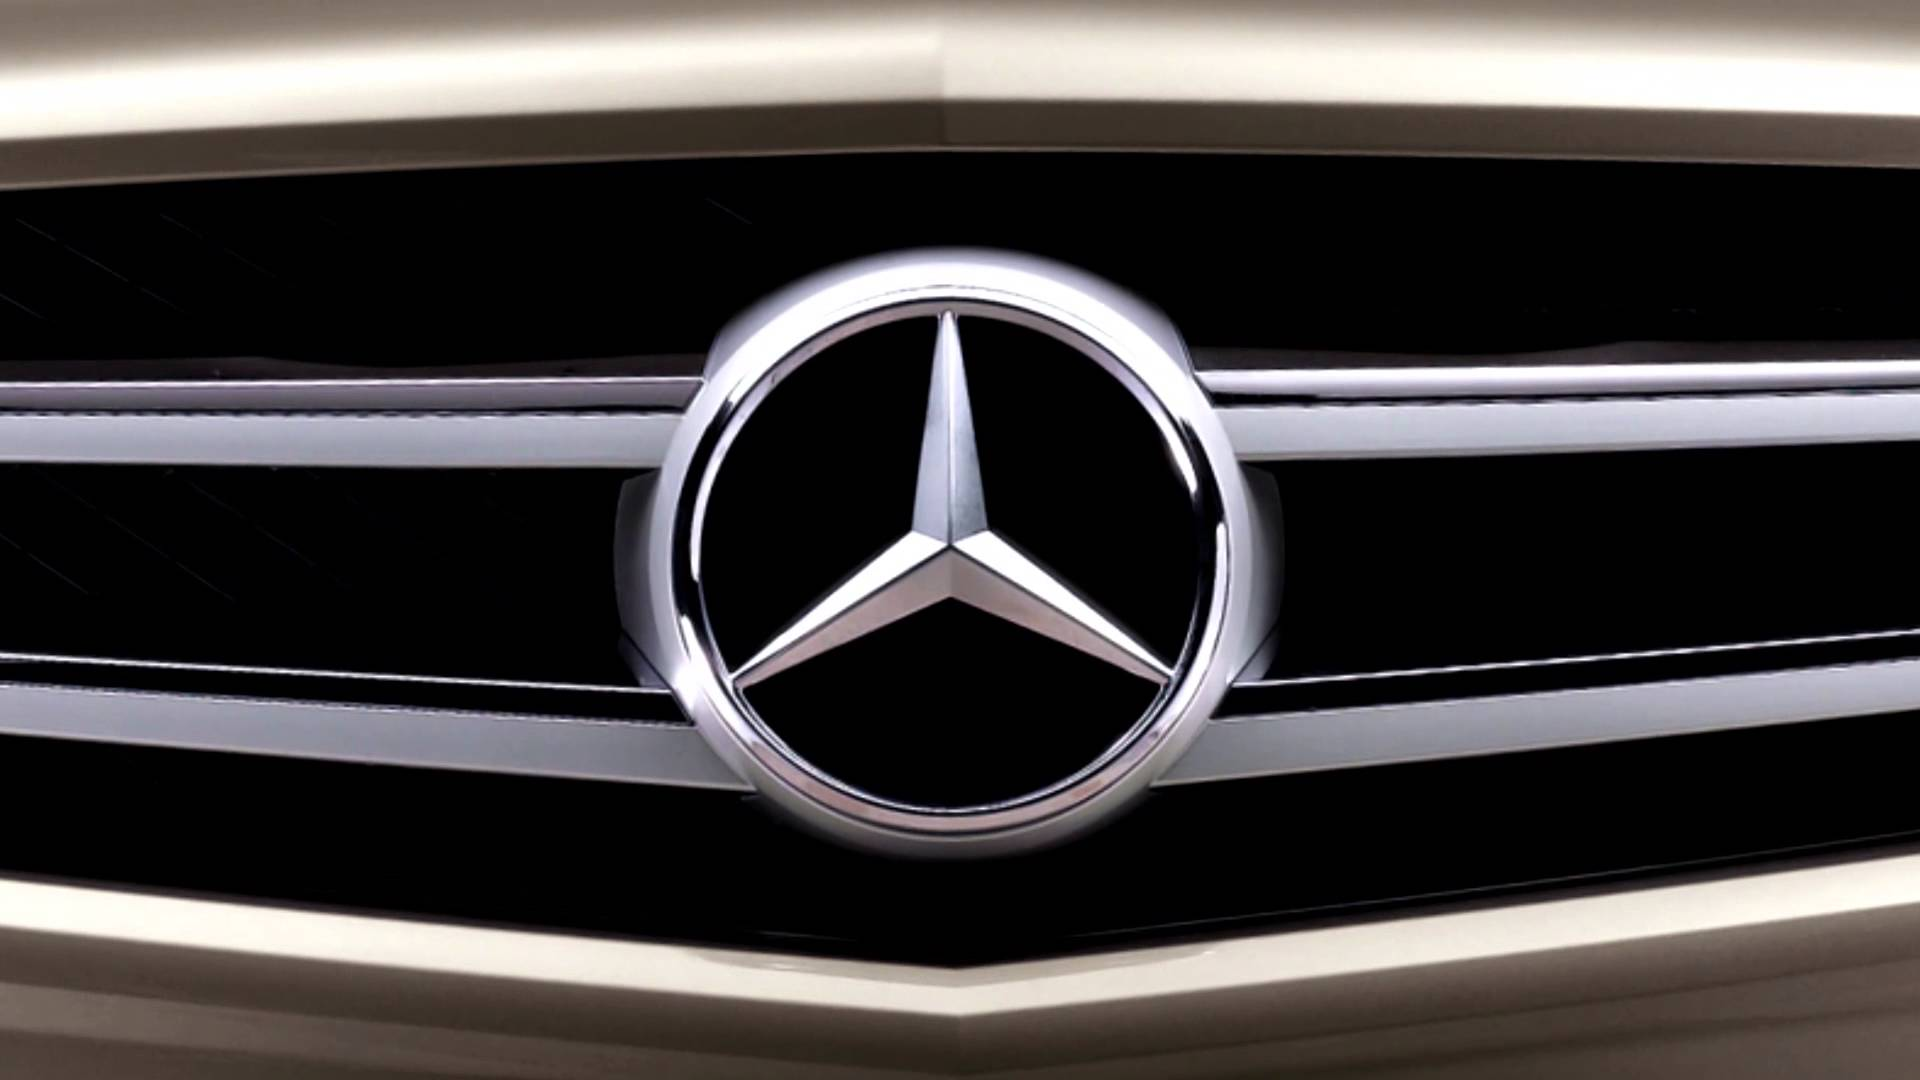 benz logo wallpapers wallpaper - photo #23